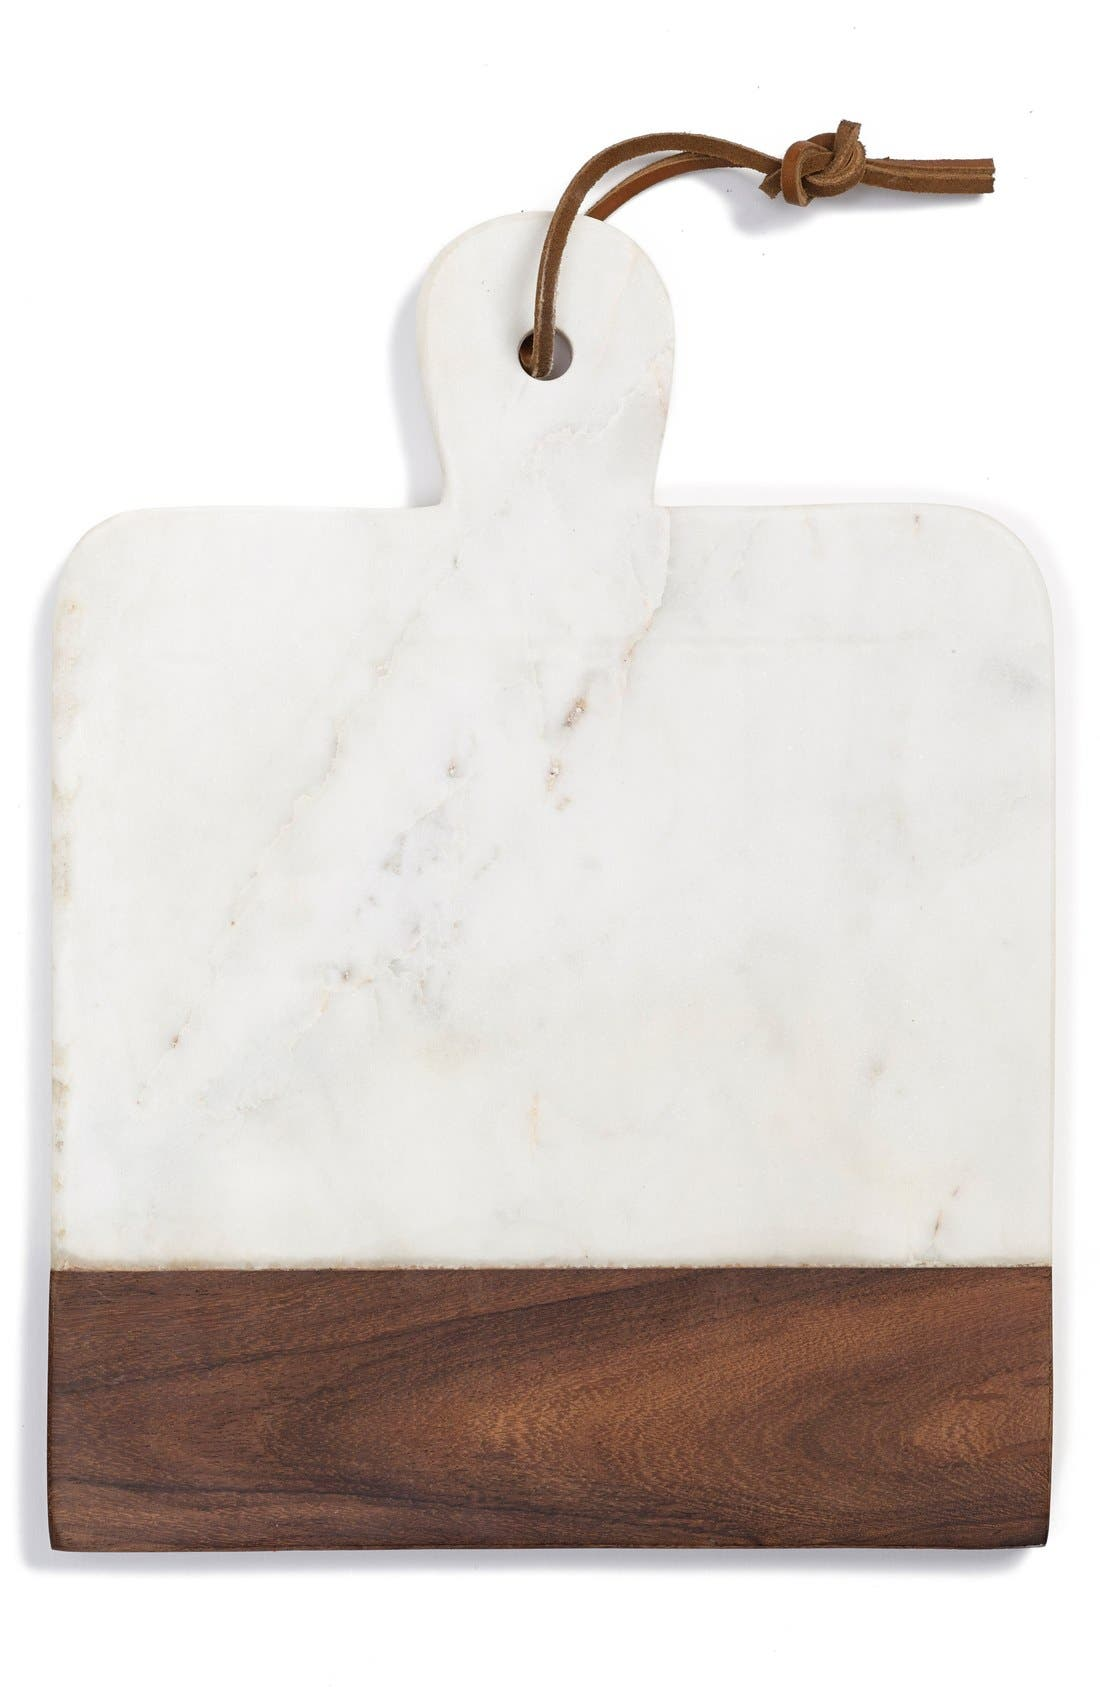 Marble & Wood Paddle Board,                             Main thumbnail 1, color,                             100